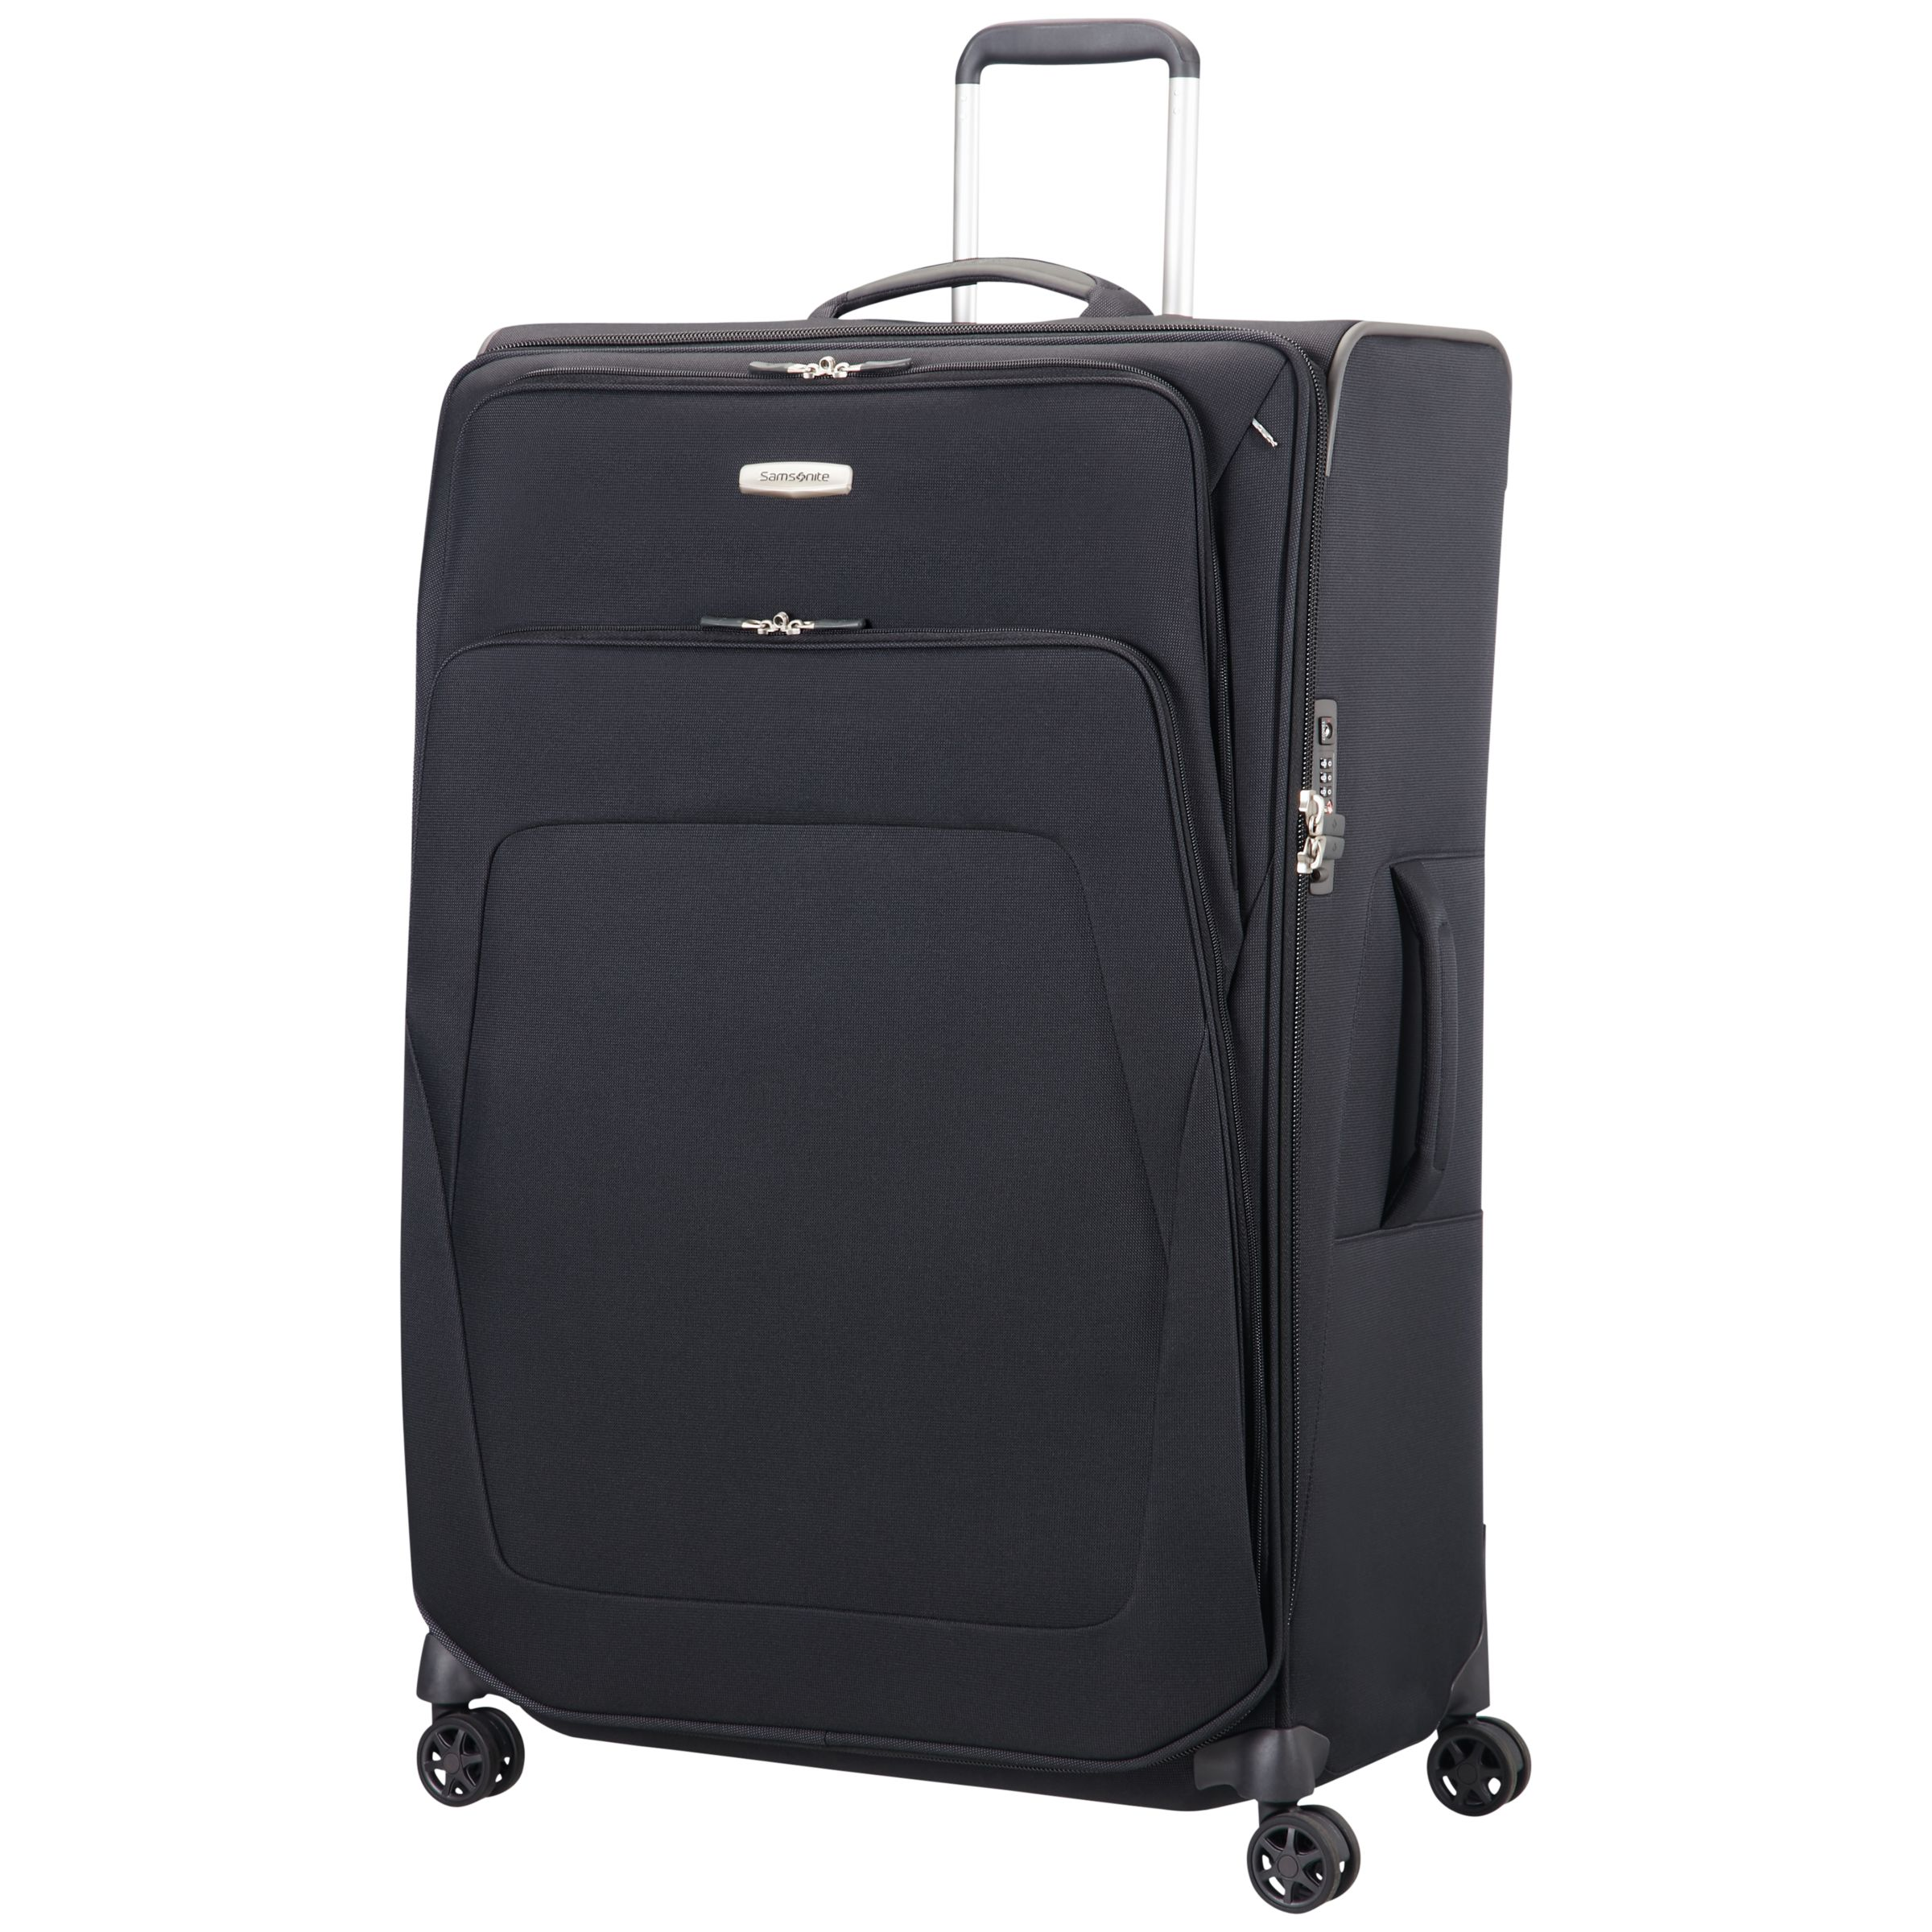 Samsonite Samsonite Spark SNG 82cm 4-Wheel Suitcase